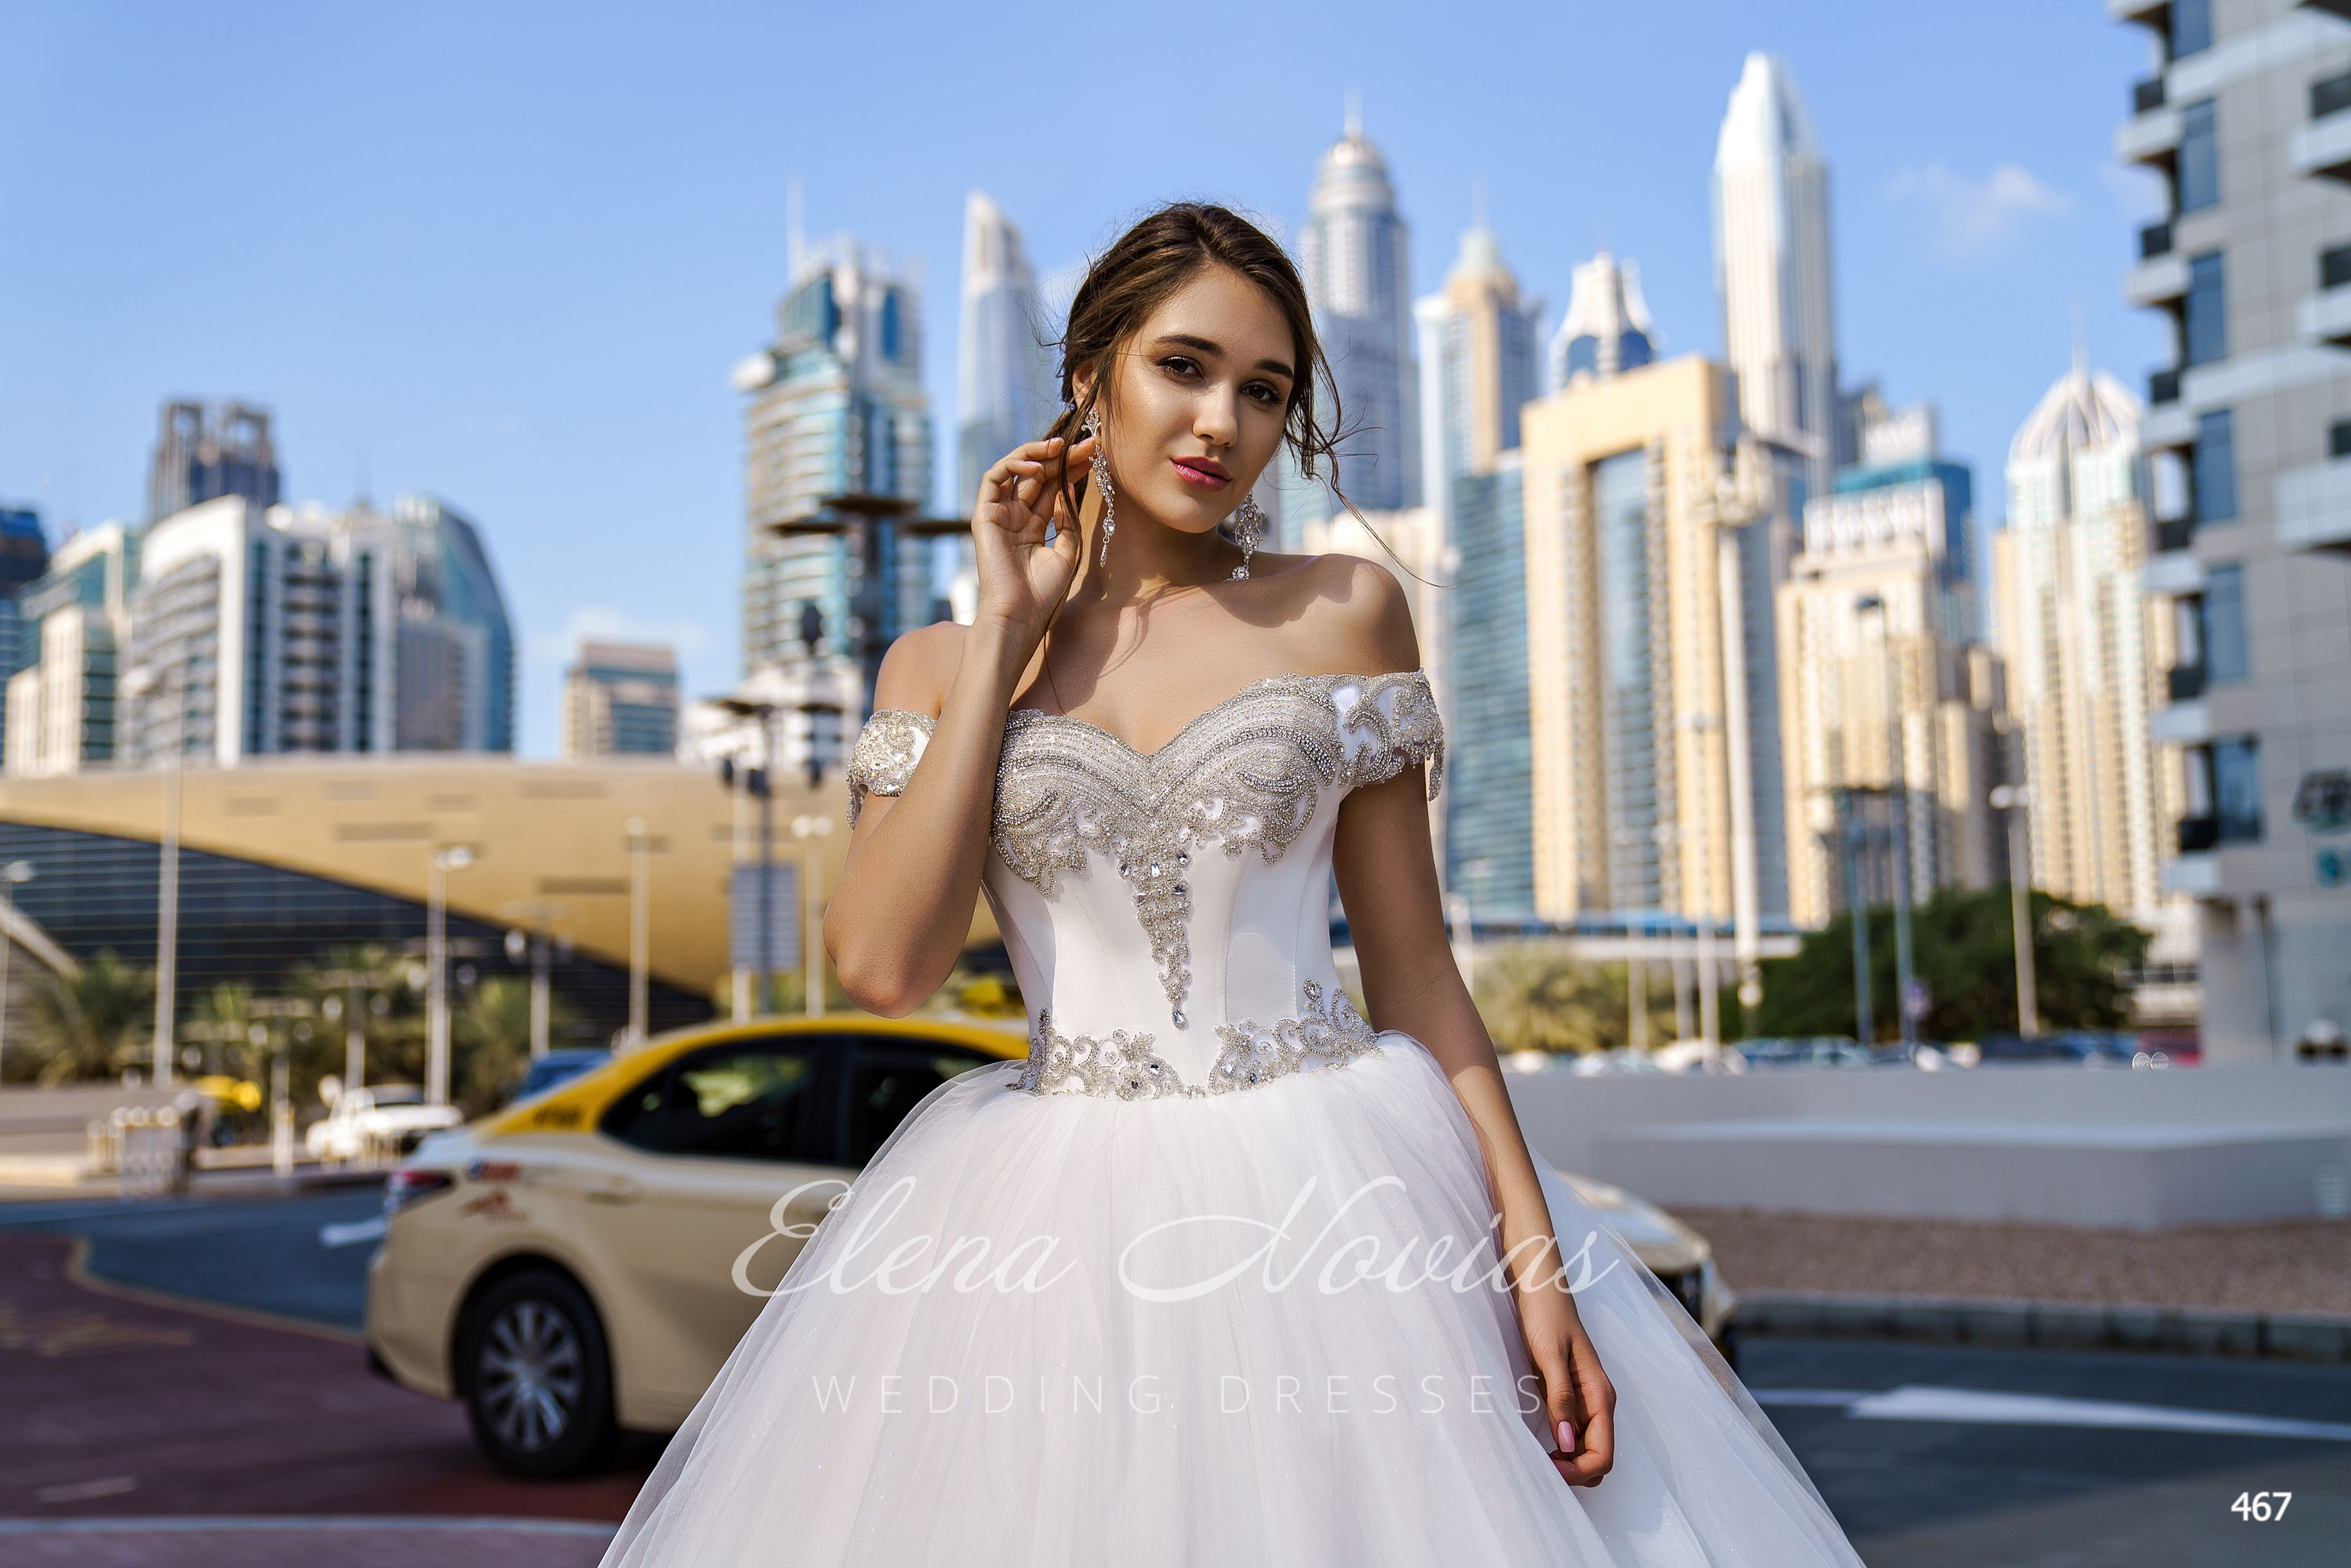 Wedding dresses 467 1